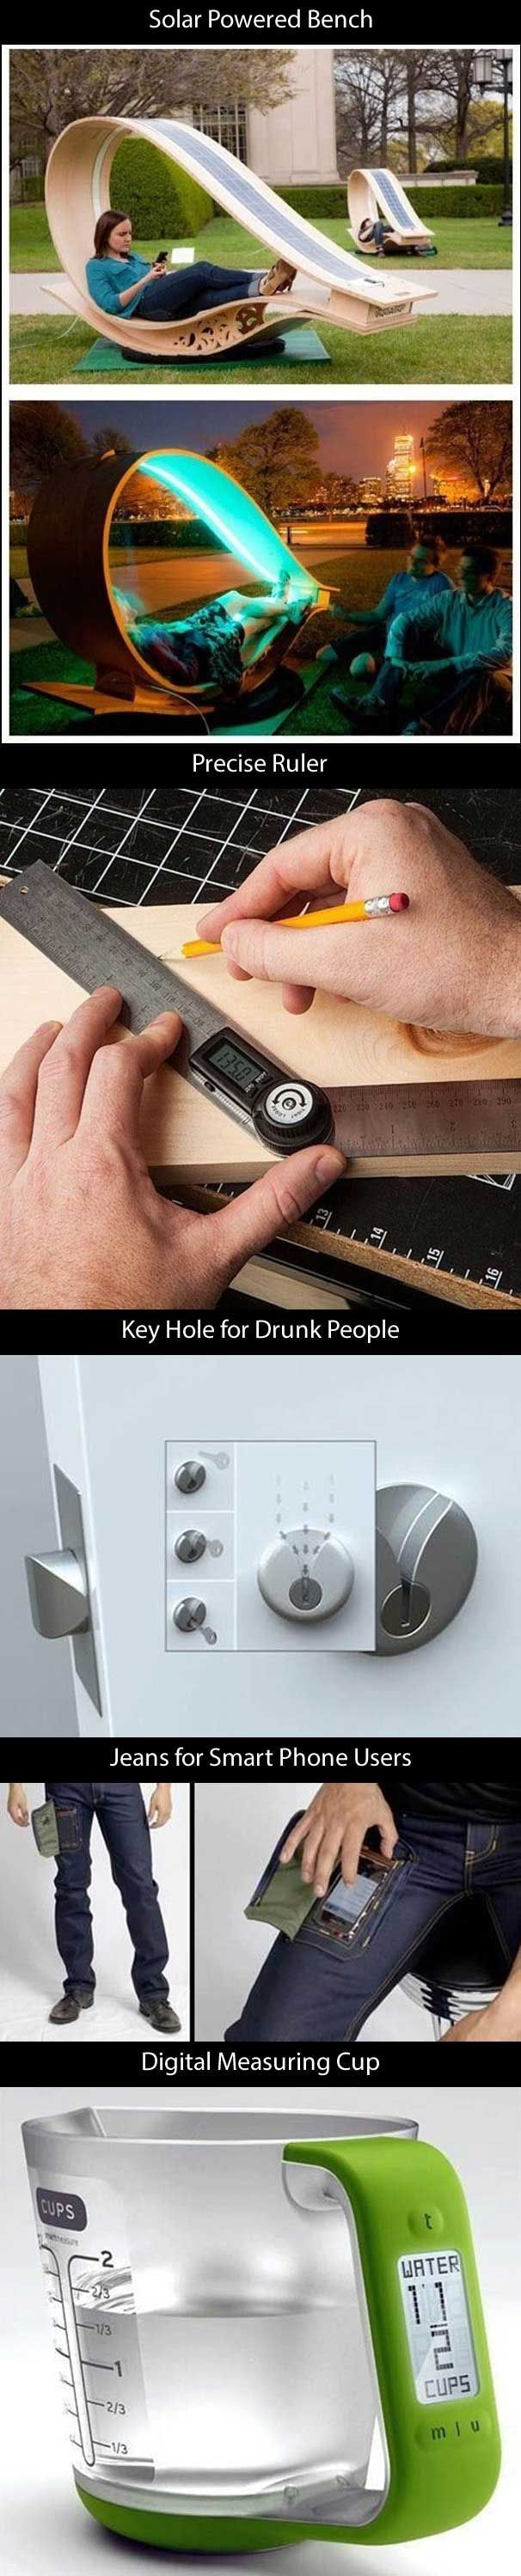 Life Hacks and other Cool Inventions in 2020 Cool